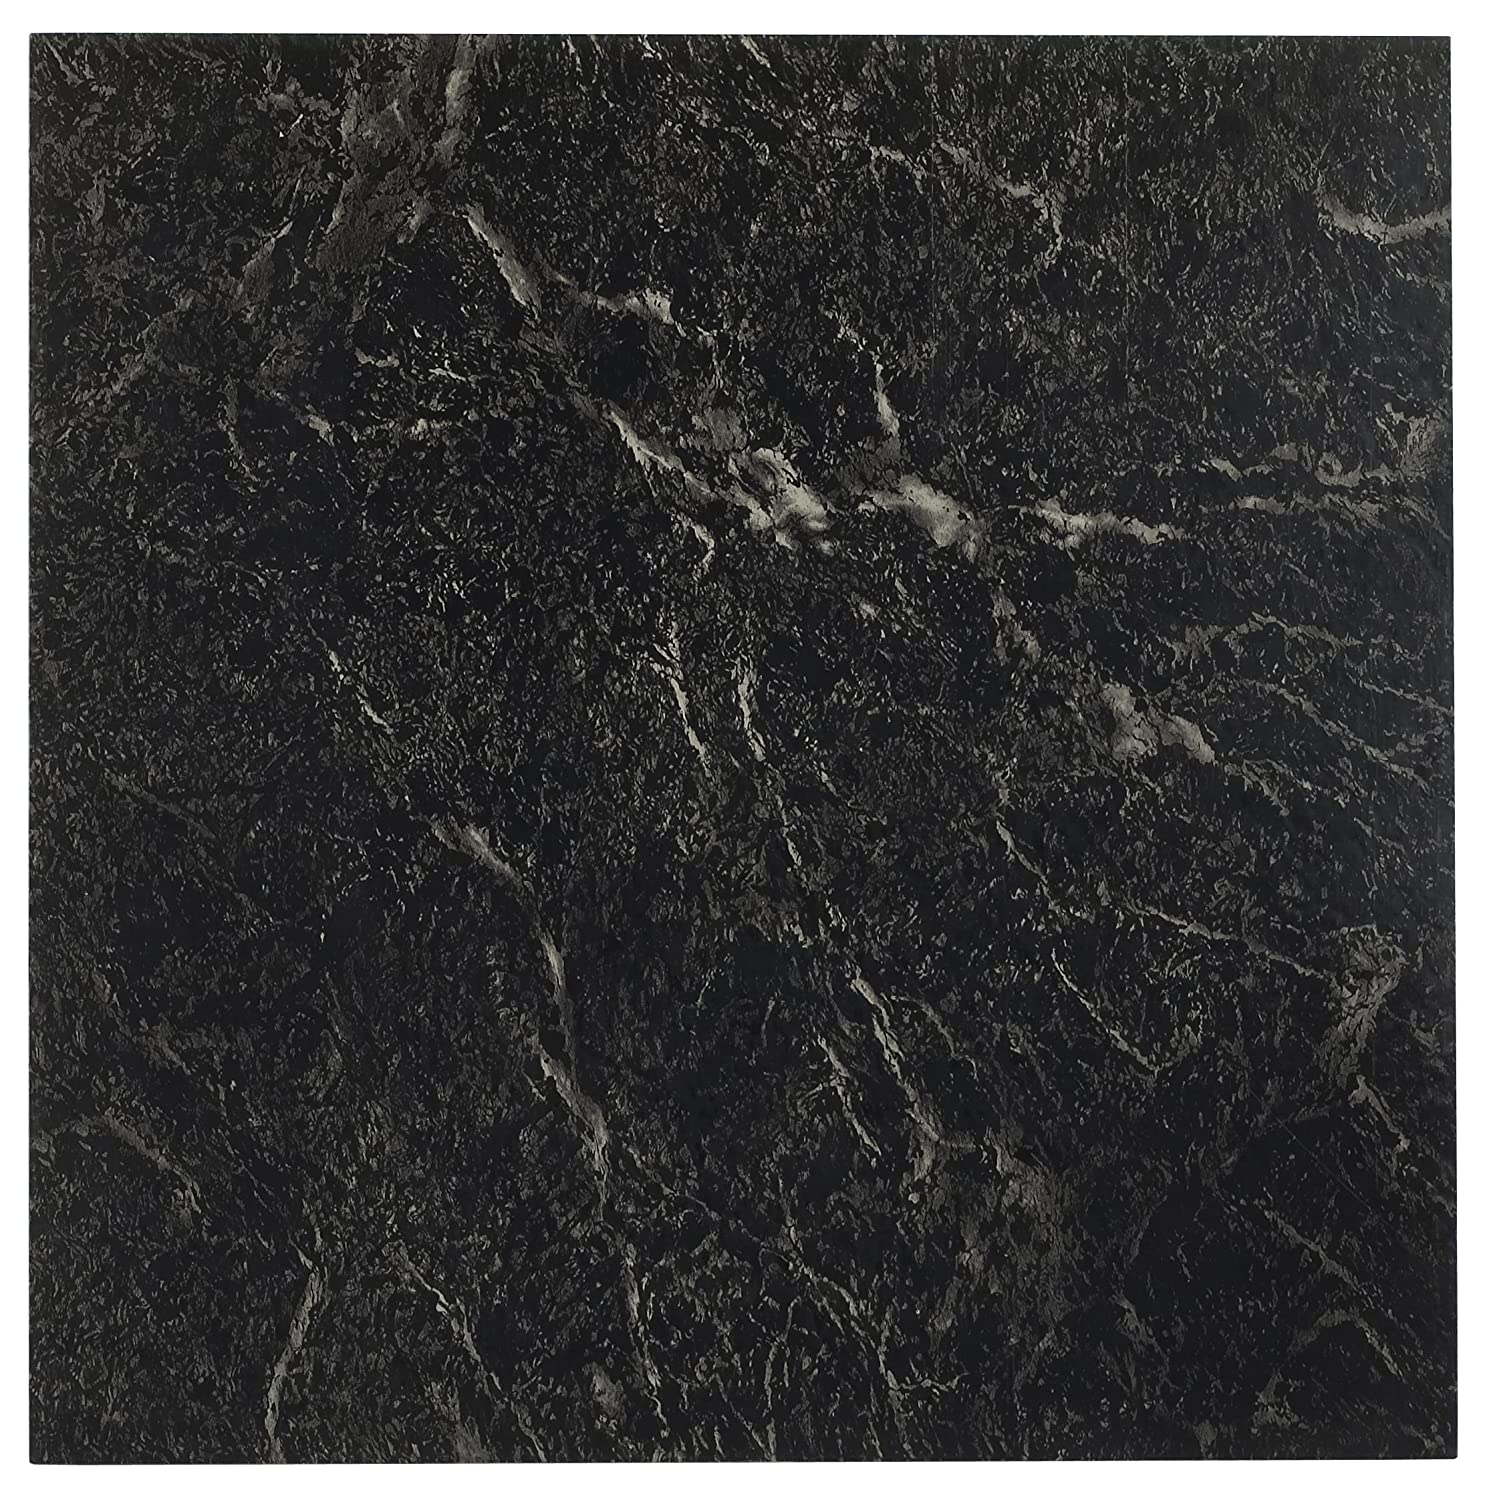 Achim home furnishings ftvma40920 nexus vinyl tile marble black achim home furnishings ftvma40920 nexus vinyl tile marble black with white vein 12 inch 20 pack vinyl flooring amazon canada doublecrazyfo Choice Image